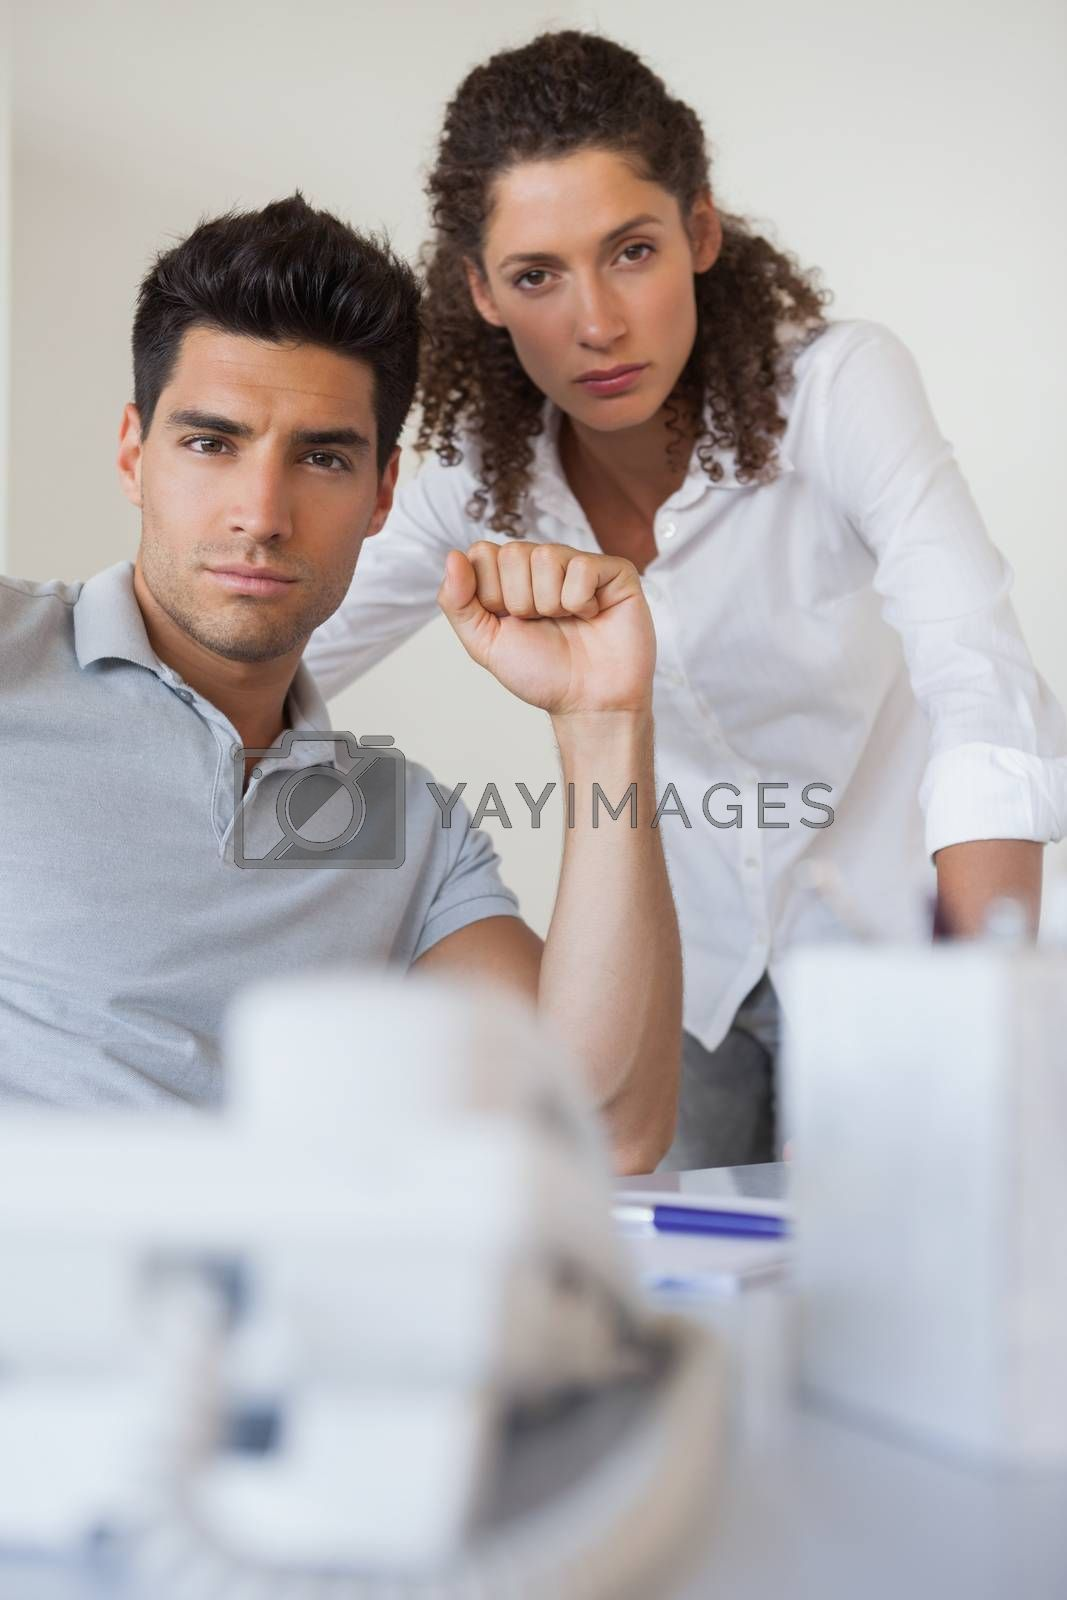 Royalty free image of Casual business team looking at camera together at desk by Wavebreakmedia